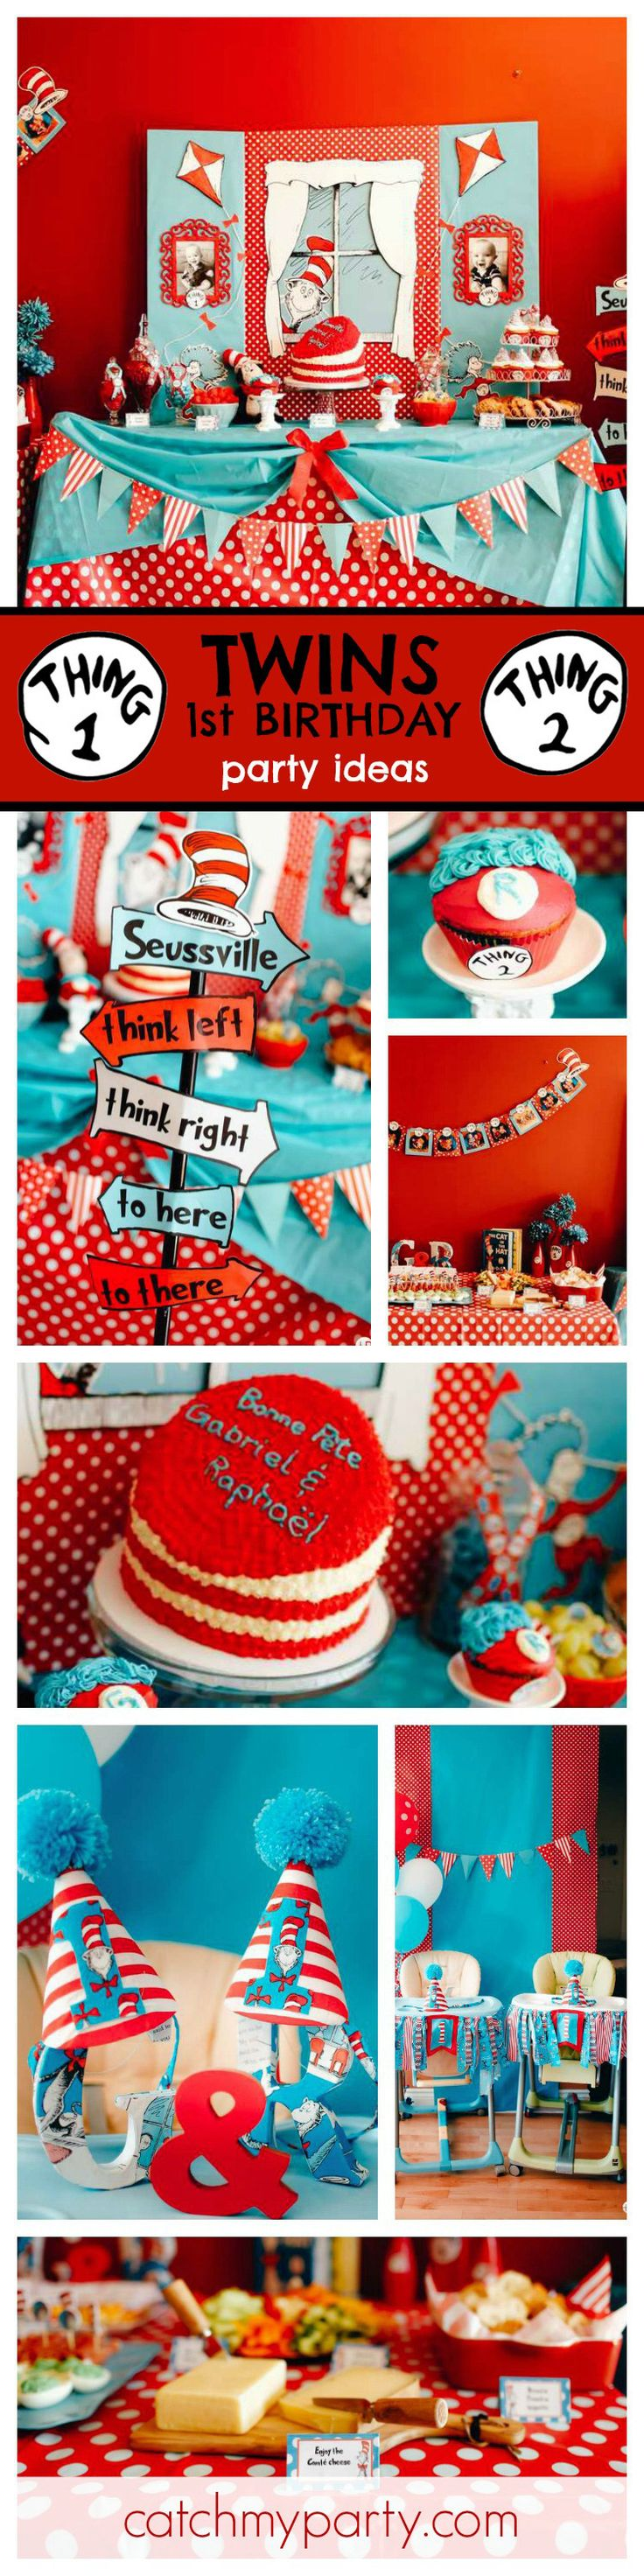 Loving this fun Cat in the Hat inspired Twin Birthday Party! The decorations and backdrop are just so awesome! See more party ideas at CatchMyParty.com